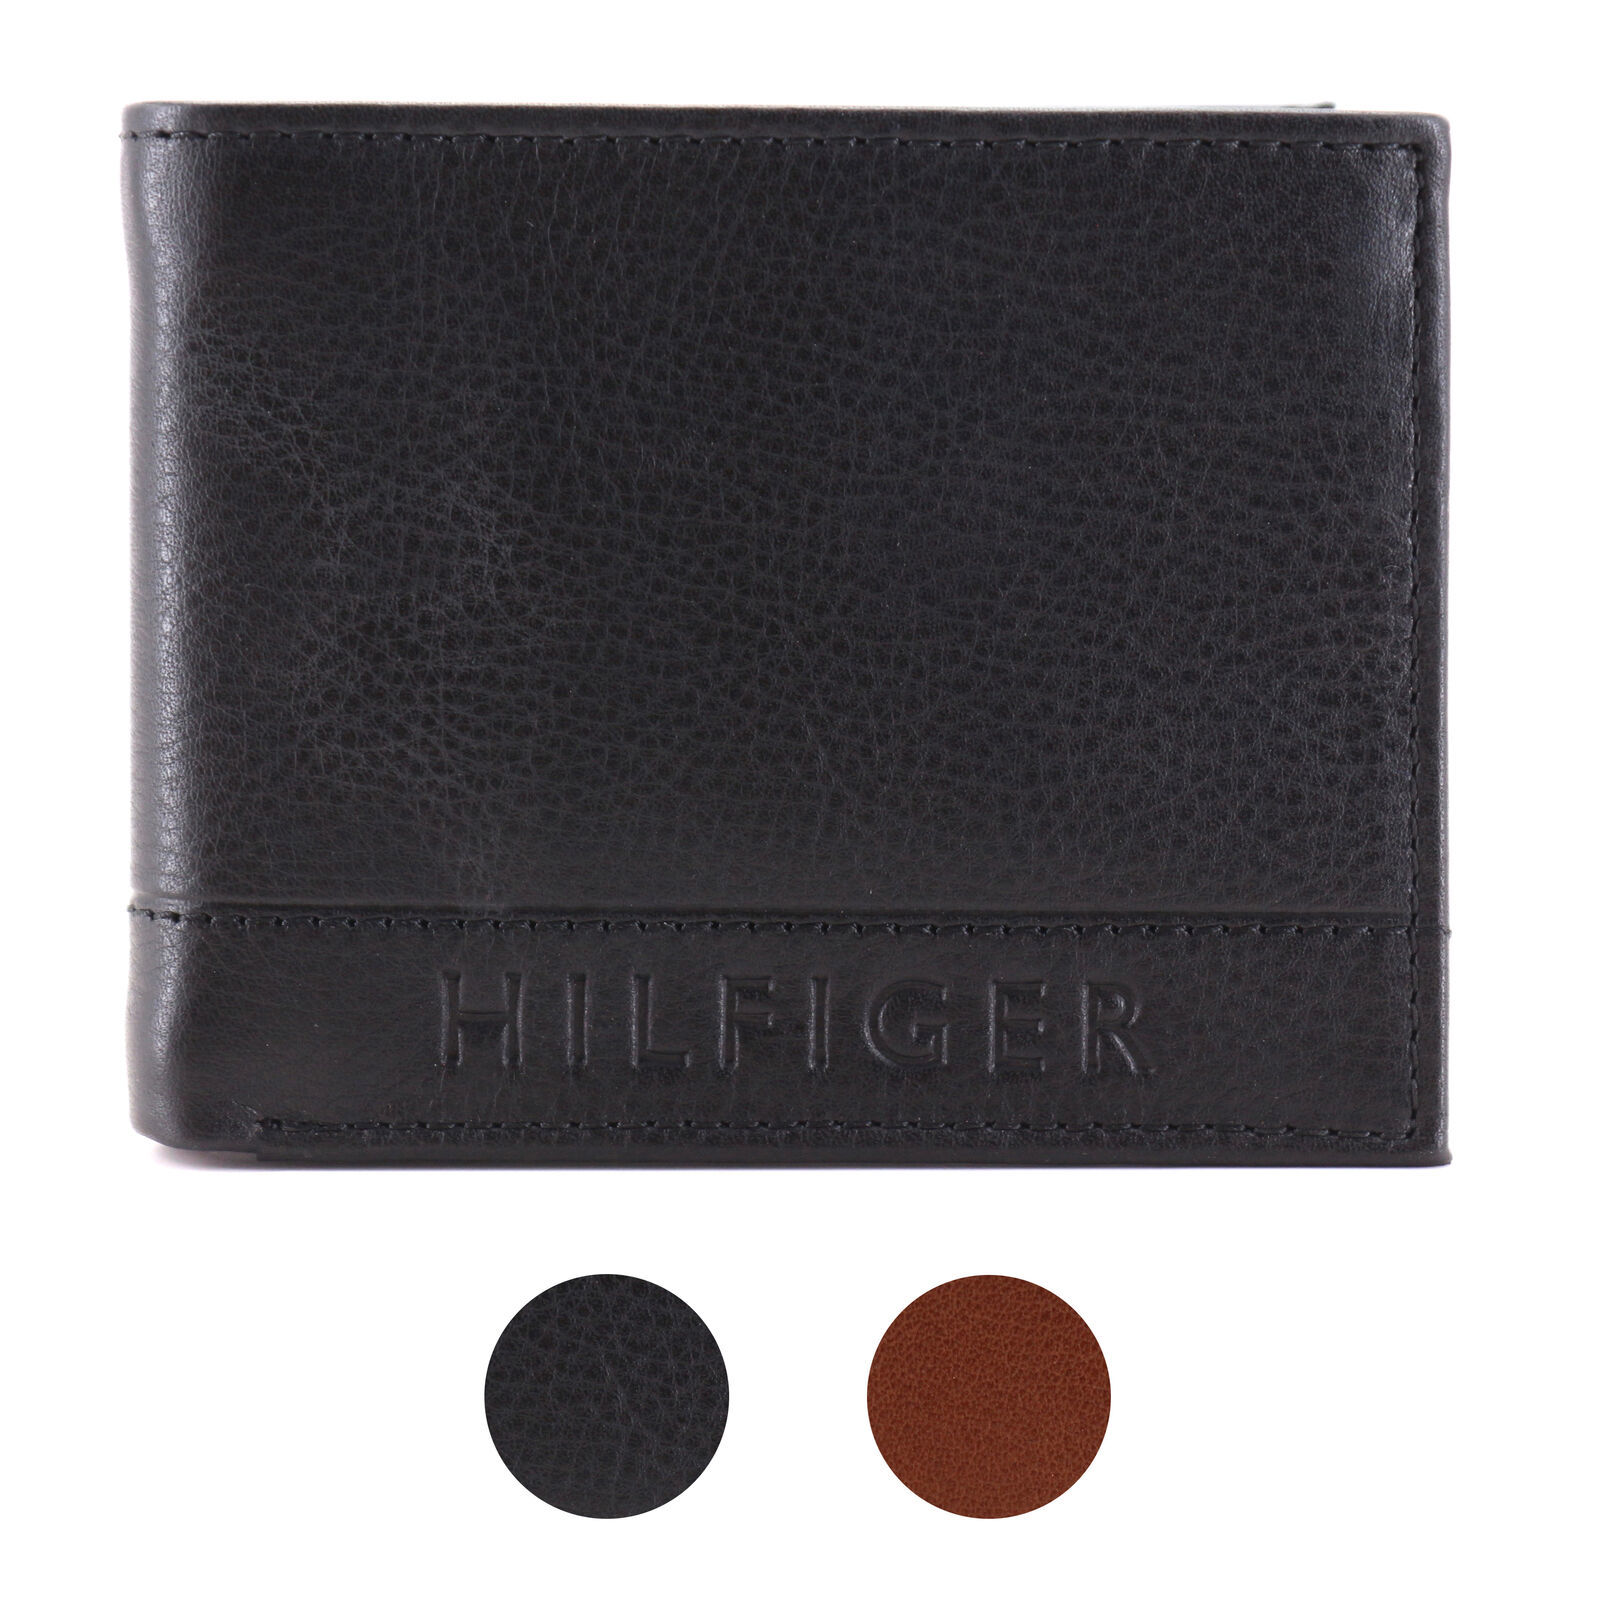 Tommy Hilfiger Men's Leather RFID Fixed Passcase Wallet Billfold 31TL220084